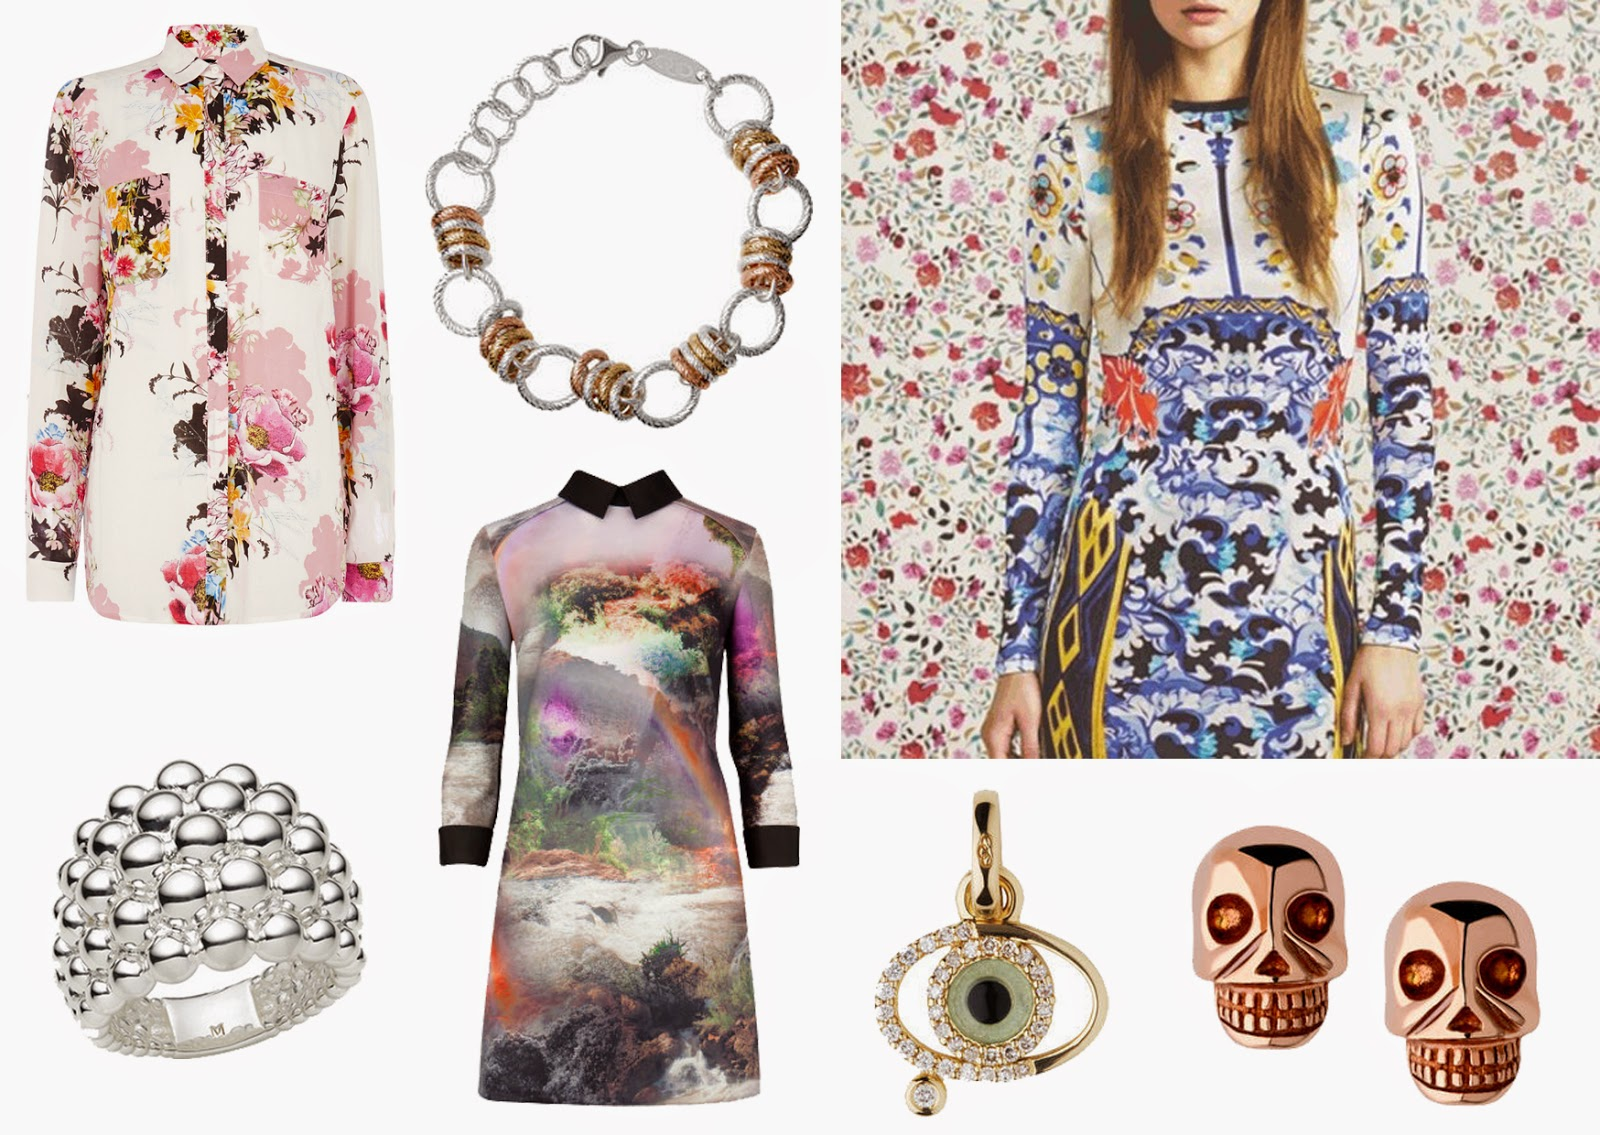 2015 Style Resolutions on Laura Rebecca Smith Fashion Blog